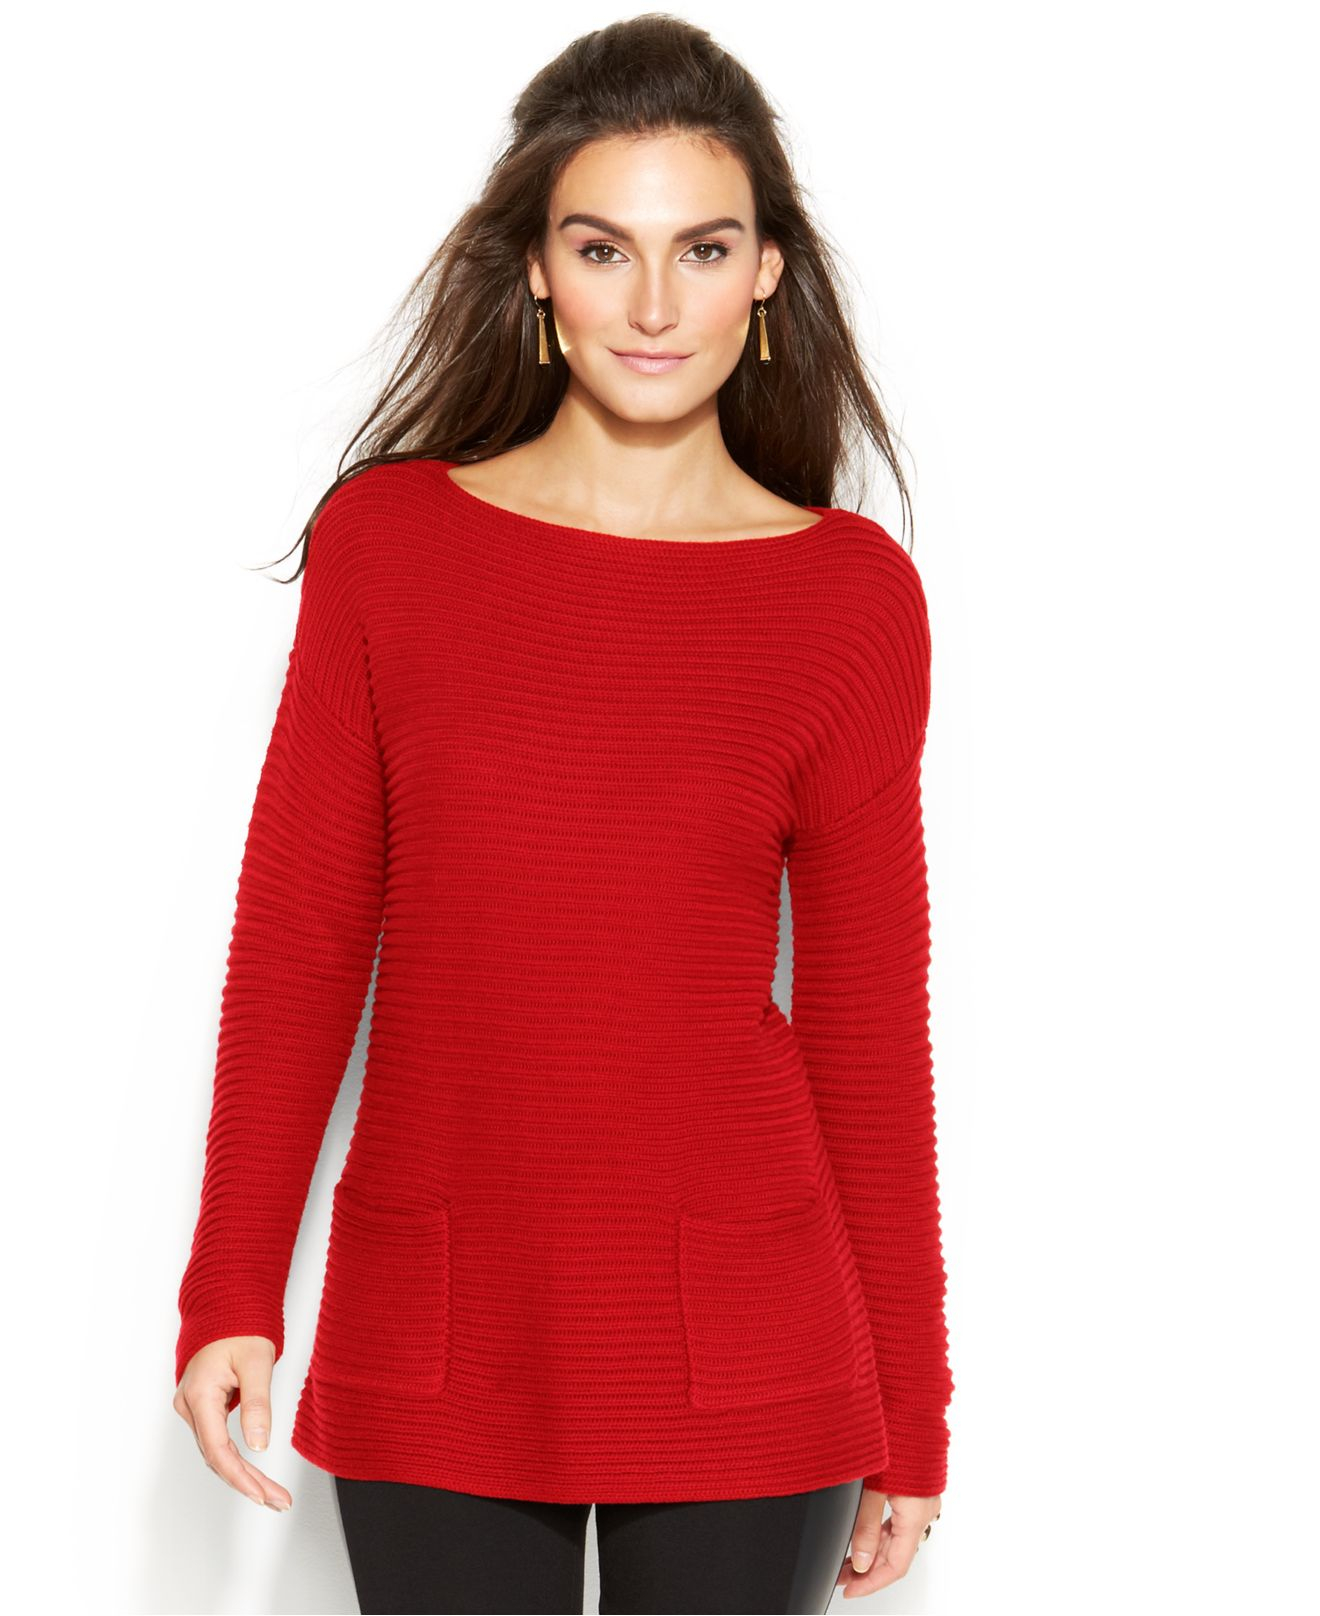 Vince camuto Long-Sleeve Tunic Sweater in Red | Lyst